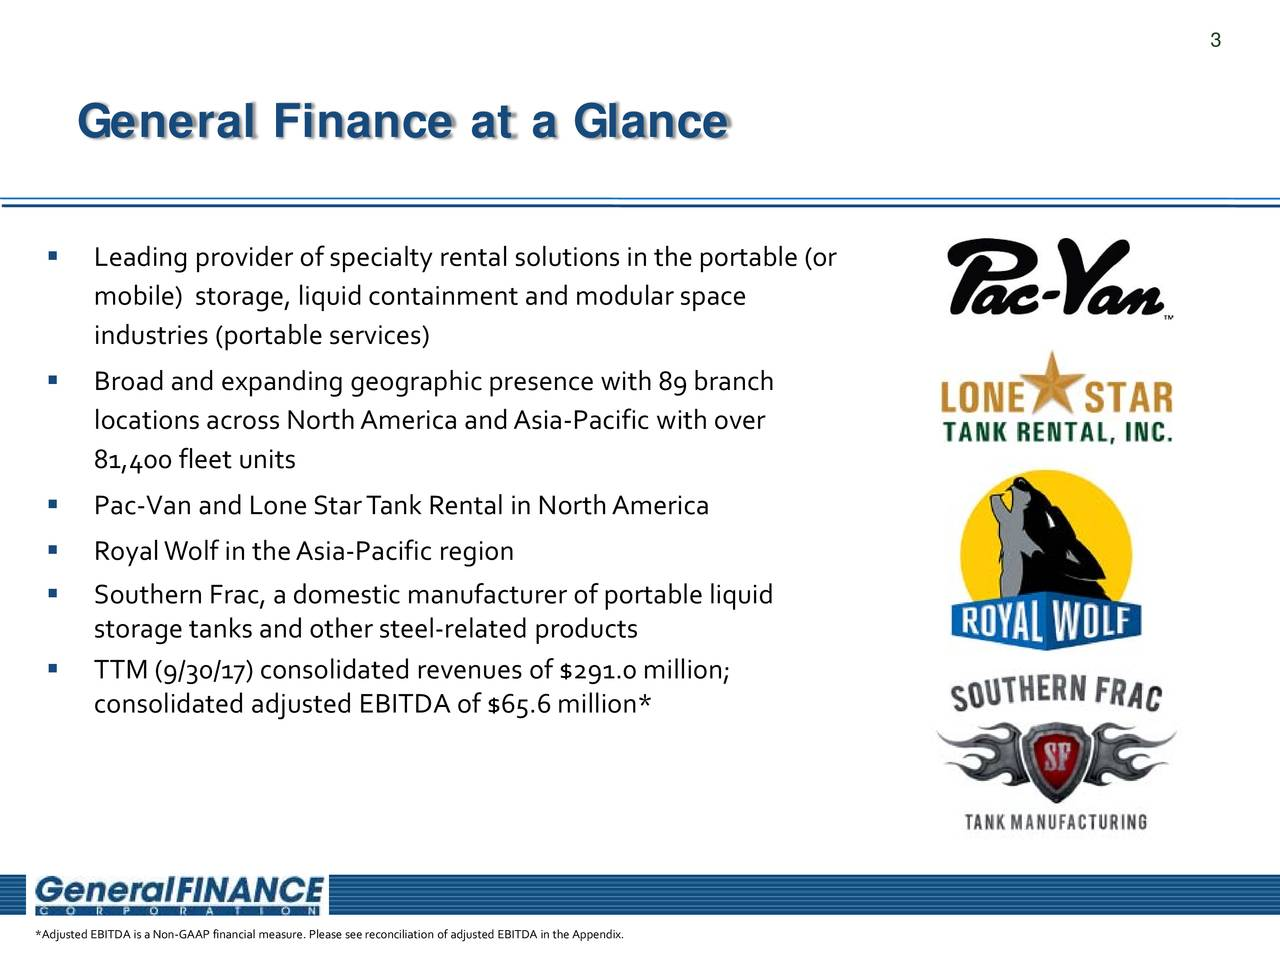 General Finance at a Glance  Leading provider ofspecialty rental solutions in theportable (or mobile) storage, liquid containment and modular space industries (portable services)  Broadand expanding geographicpresence with89branch locations across North America and Asia-Pacific with over 81,400 fleet units  Pac-Van and LoneStarTank Rental in NorthAmerica  Royal Wolf in the Asia-Pacific region  Southern Frac, a domestic manufacturer of portable liquid storage tanks and other steel-related products  TTM (9/30/17) consolidated revenues of $291.0 million; consolidated adjusted EBITDA of $65.6 million* *Adjusted EBITDA is aNon-GAAP financial measure. Please see reconciliation of adjusted EBITDA in the Appendix.